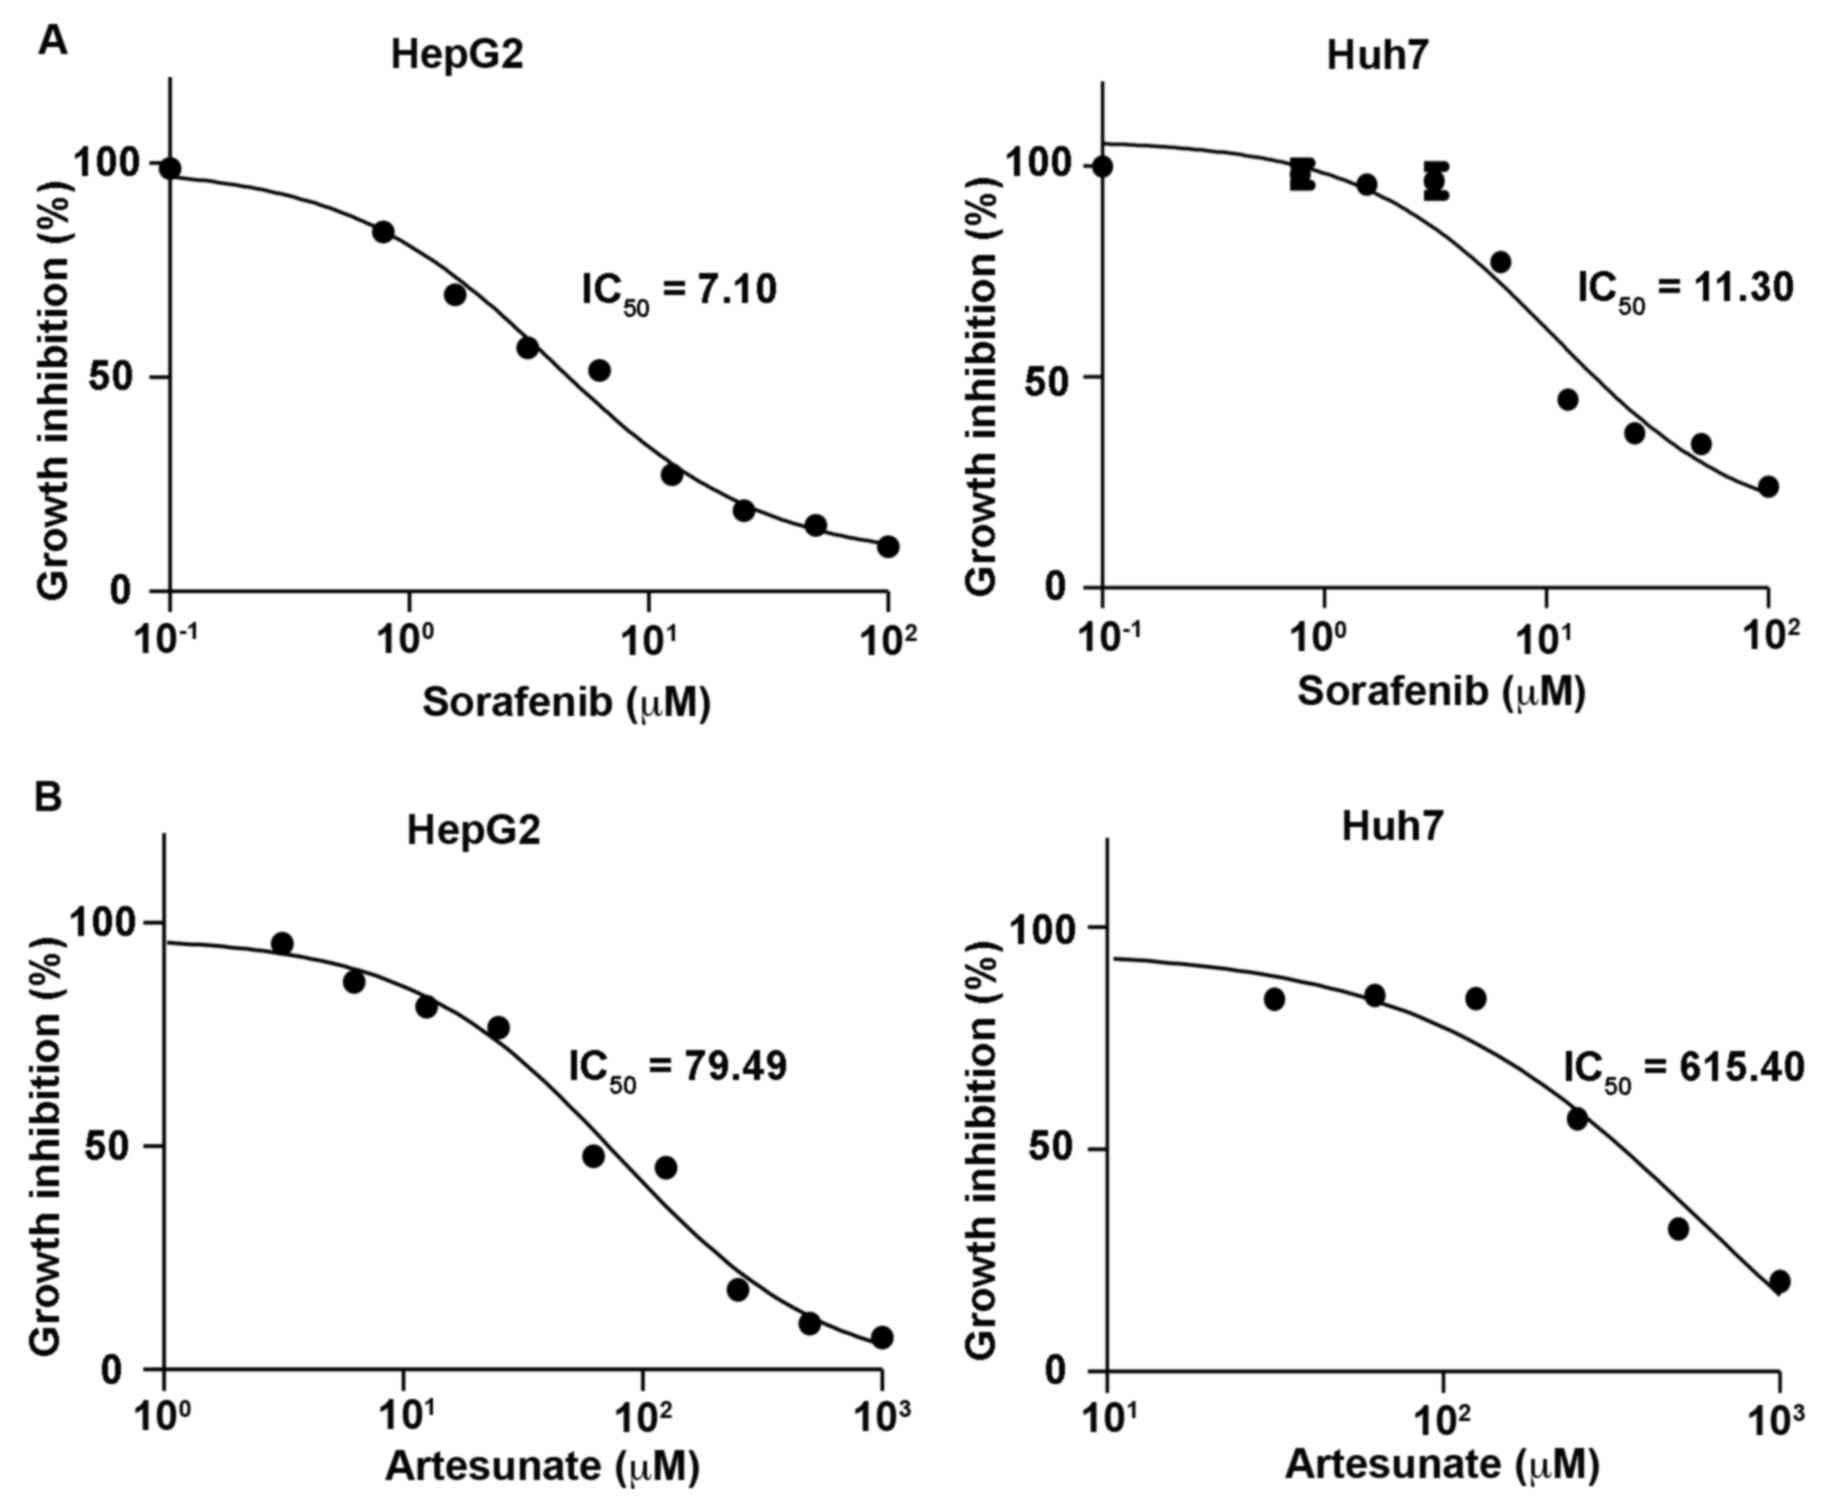 Artesunate And Sorafenib Combinatorial Inhibition Of Liver Cancer Cell Growth